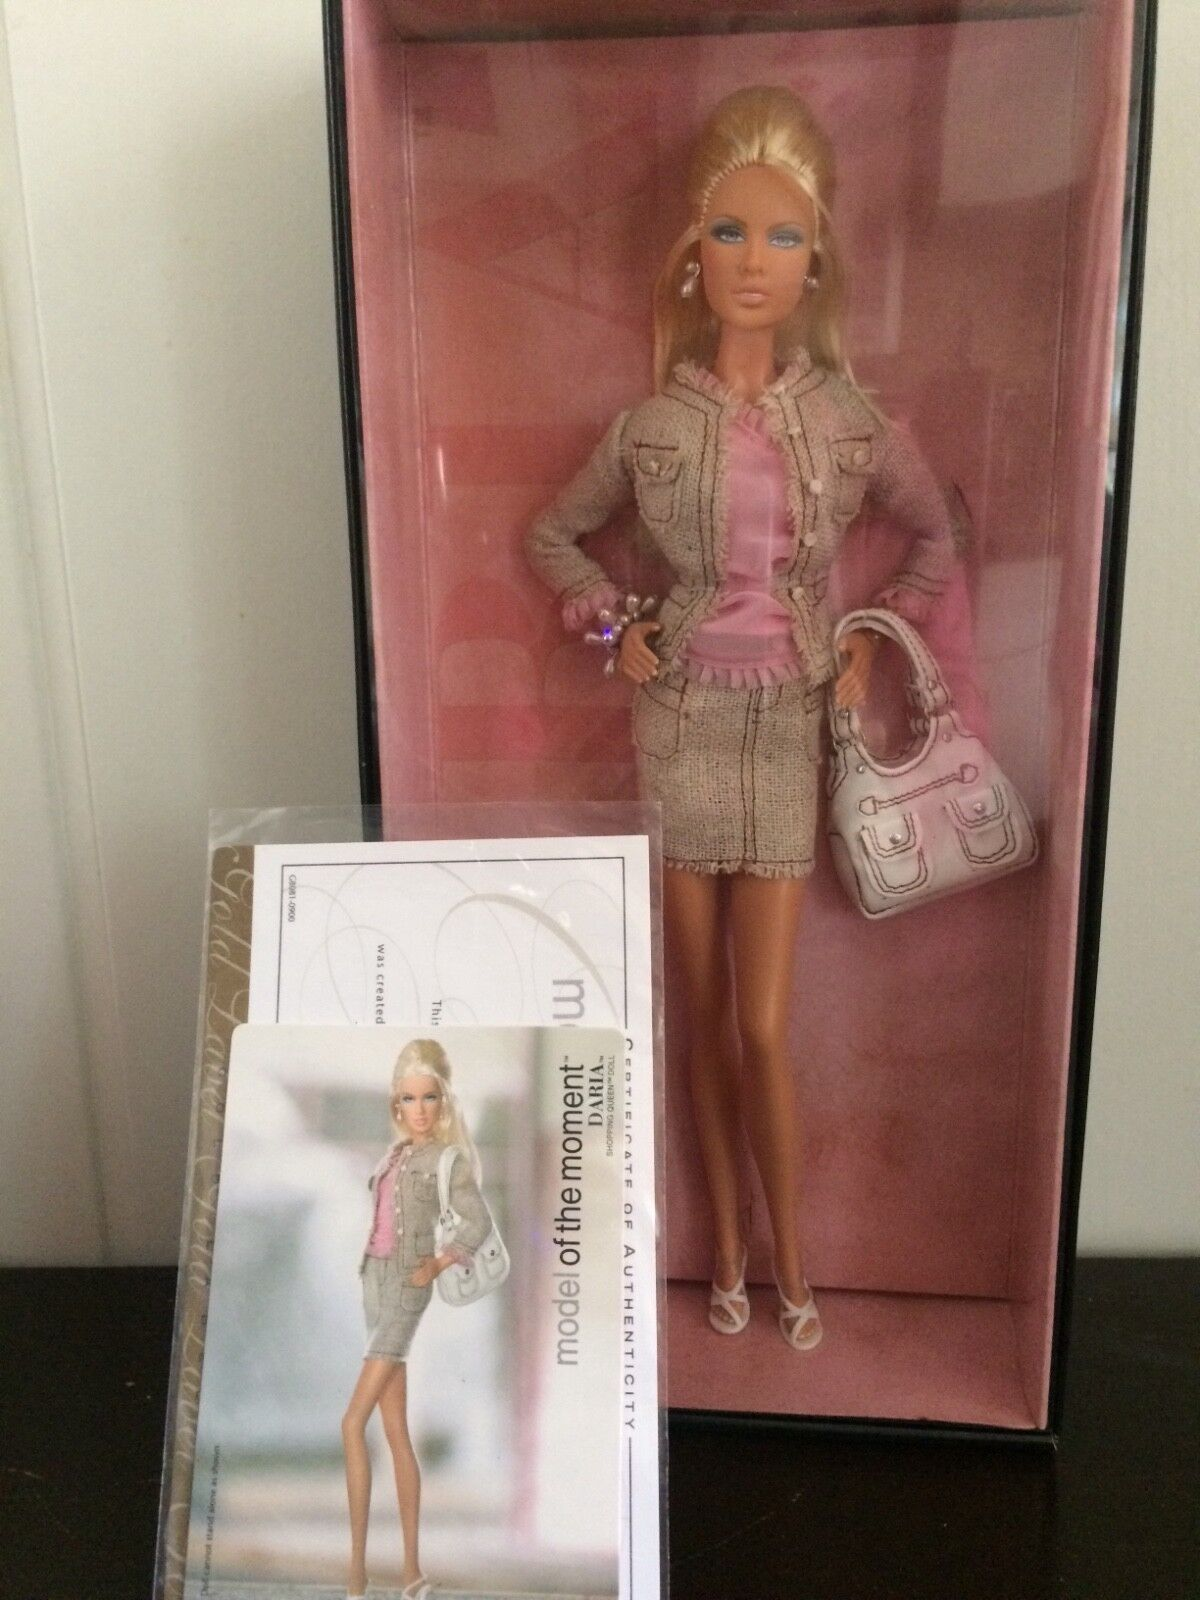 Barbie daria Model of the moment mattel g8081 oro Label